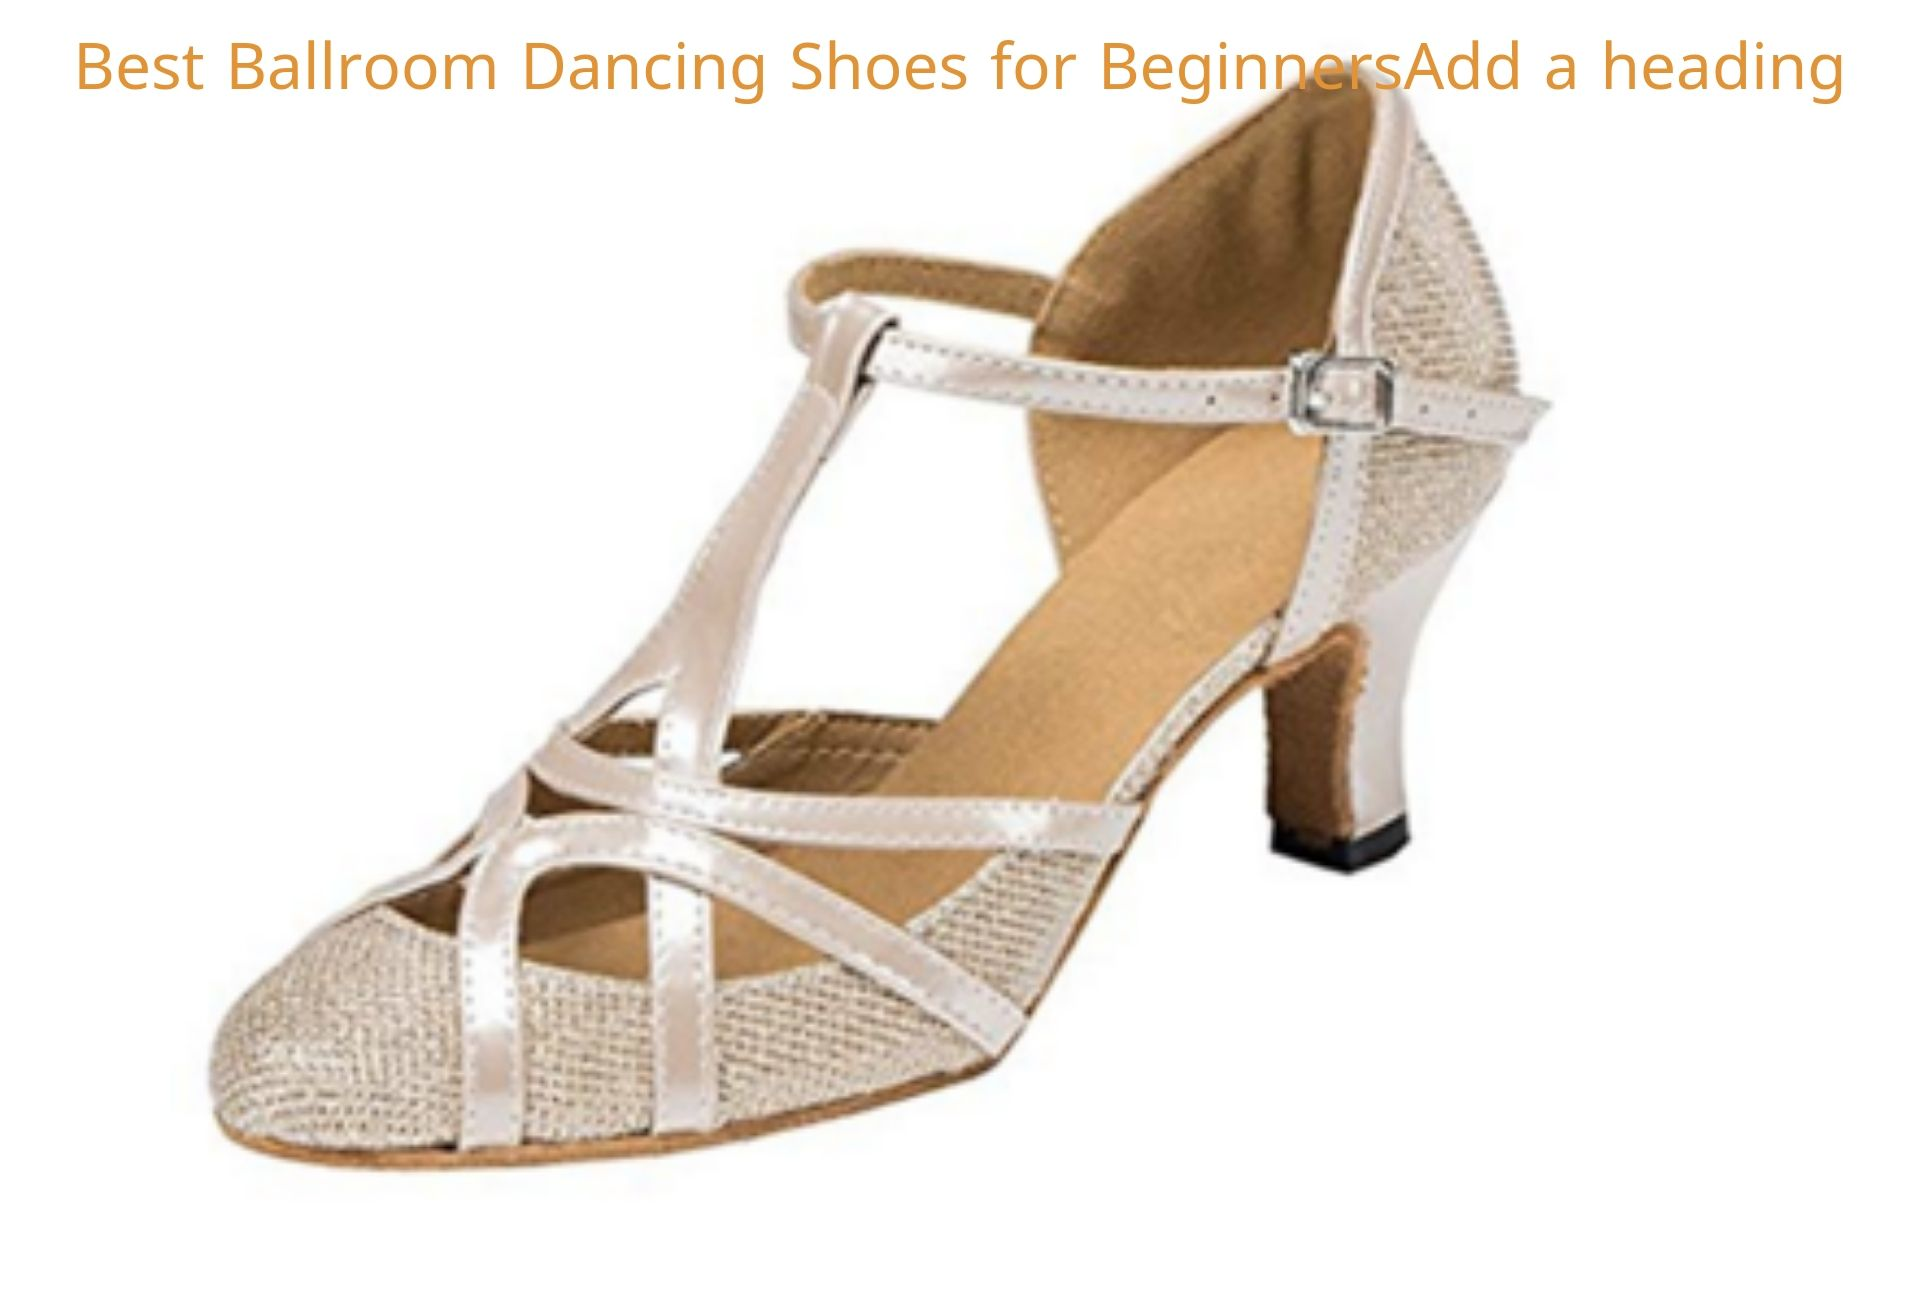 Best Ballroom Dancing Shoes for Beginners